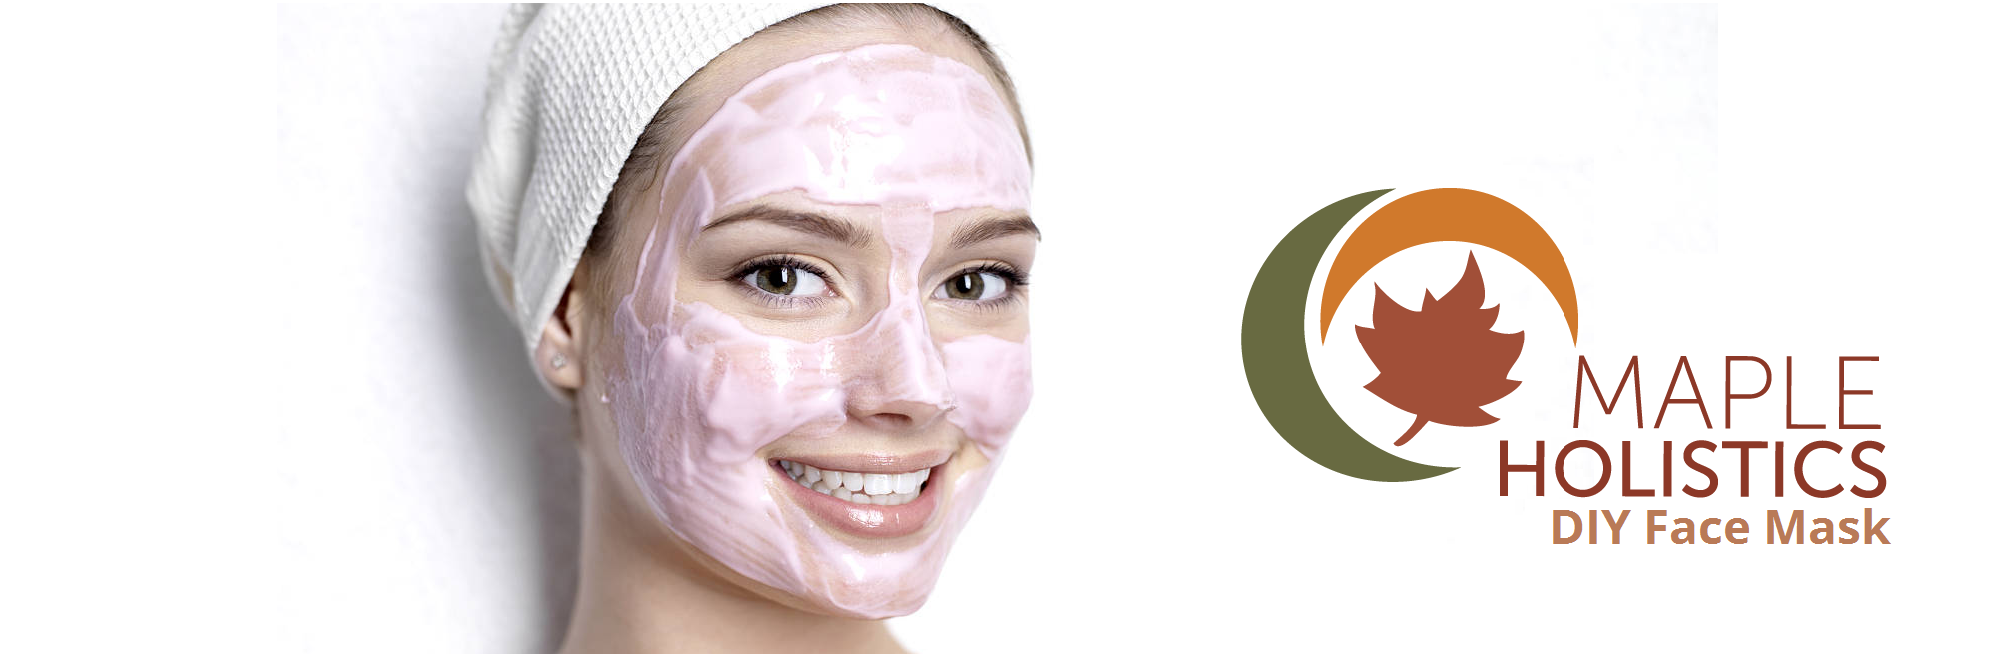 DIY Natural Face Mask Recipes And Guide: Acne, Dry Skin